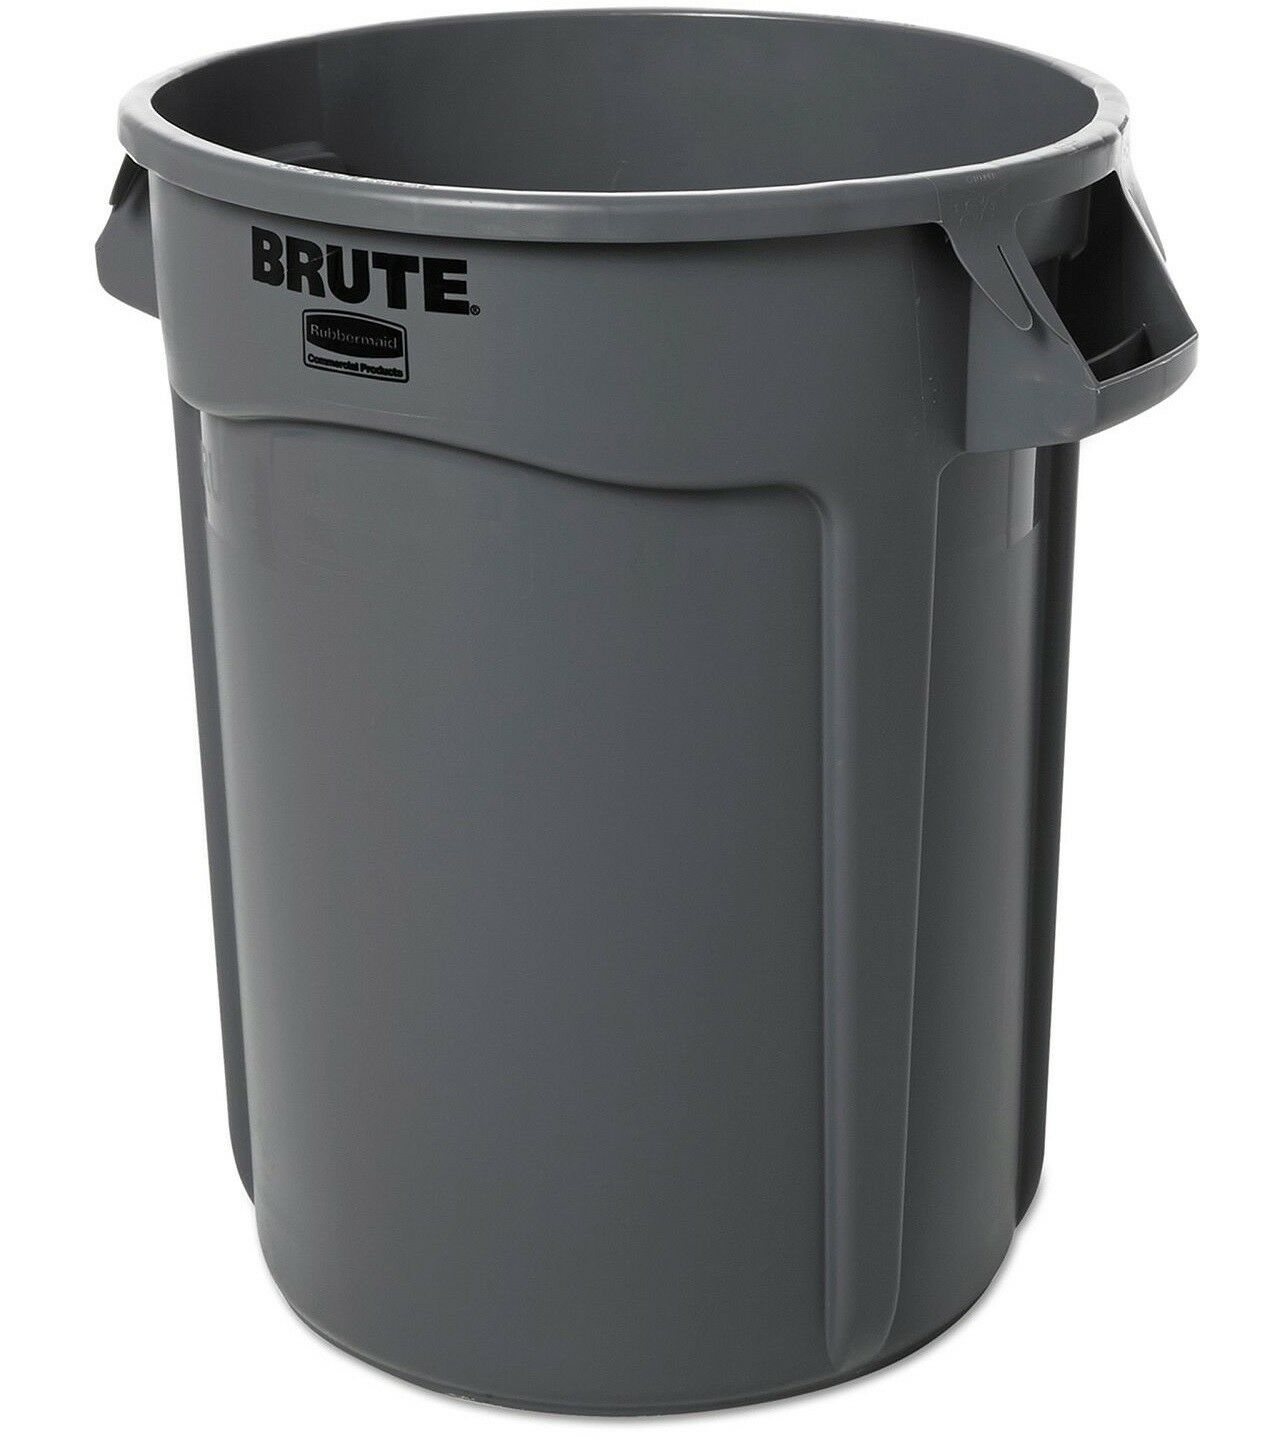 gray rubbermaid industrial commercial brute trash can garbage bin various sizes 1 of 2only 3 available - Industrial Trash Cans